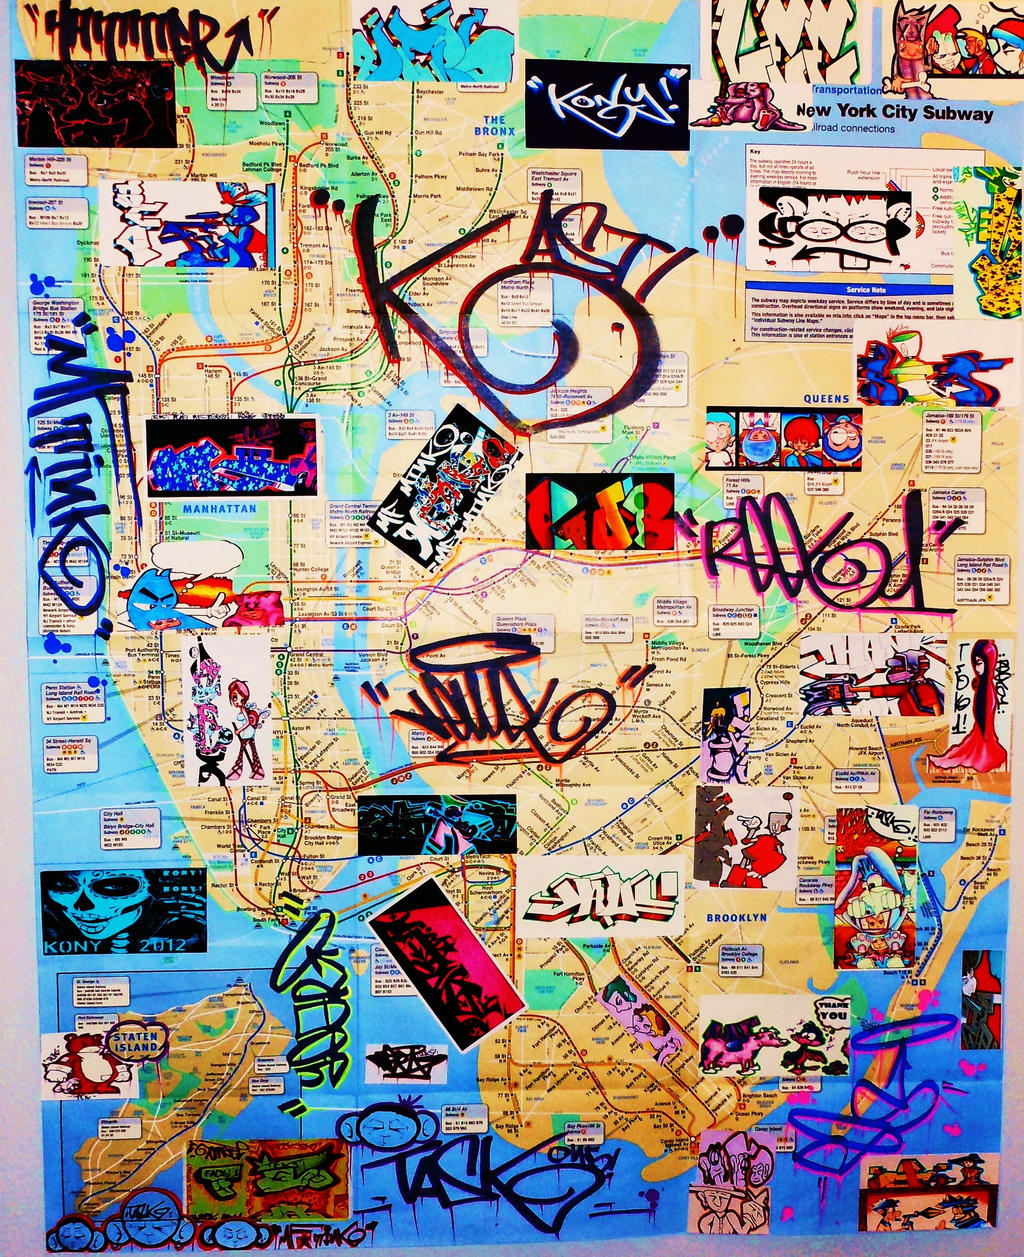 New York City Graffiti Art Subway Map By MFminK On DeviantArt - New york subway map with streets